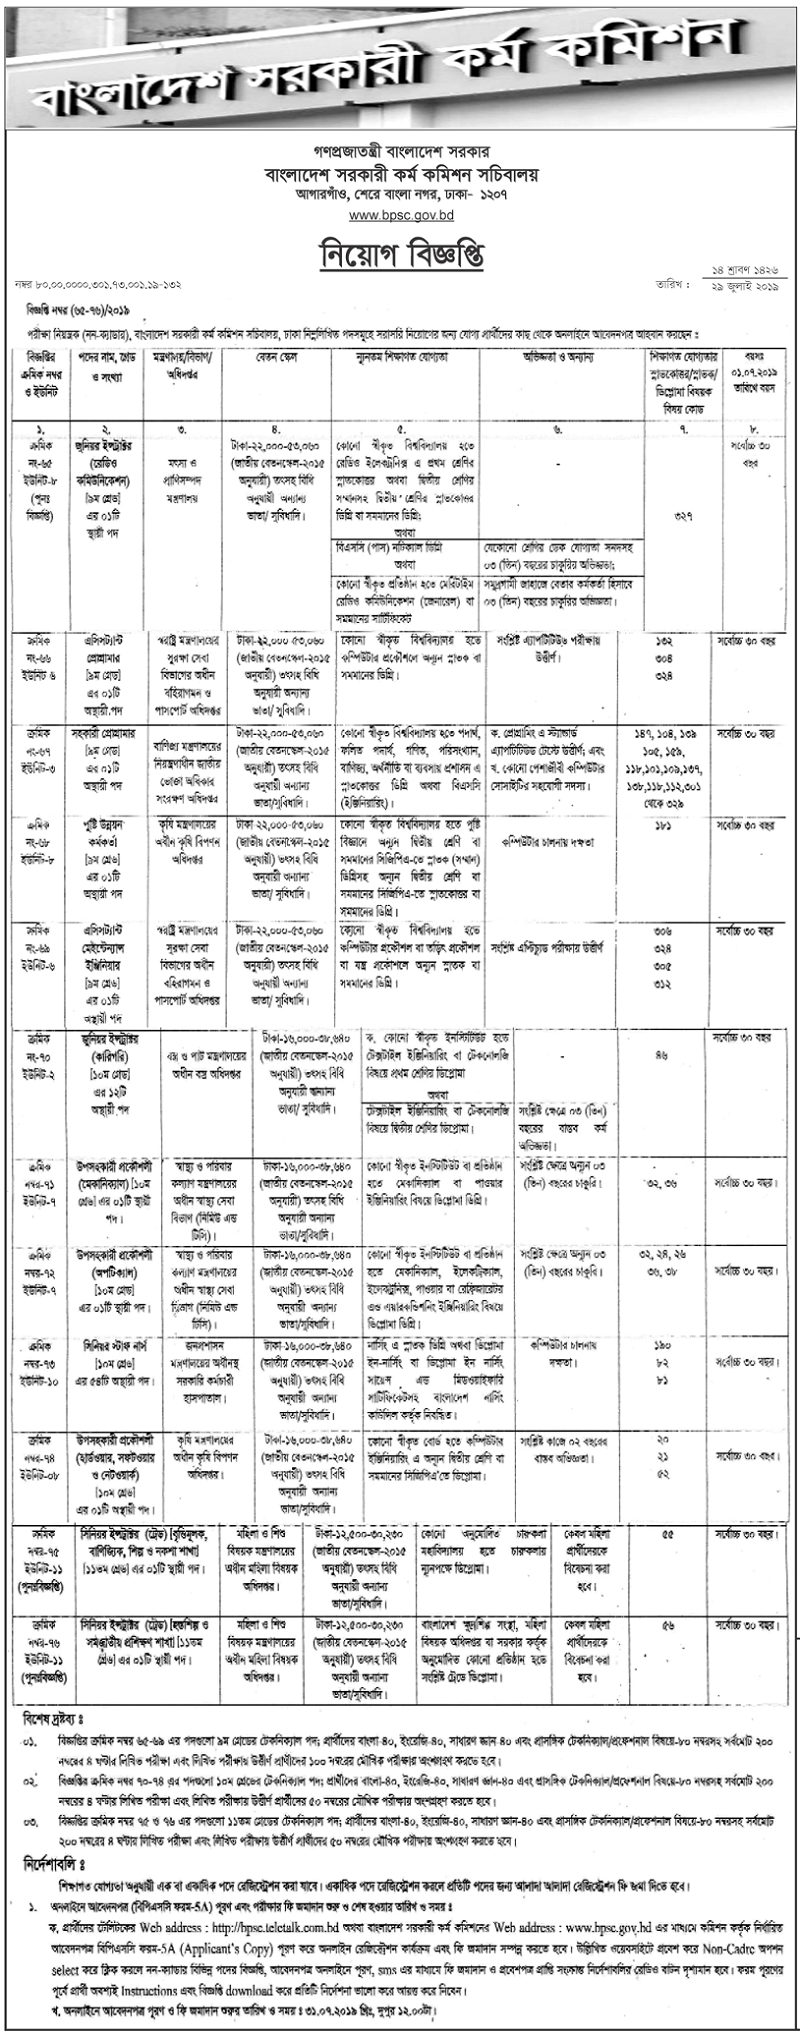 Bangladesh Public Service Commission Job Circular 2019| BD Jobs Careers